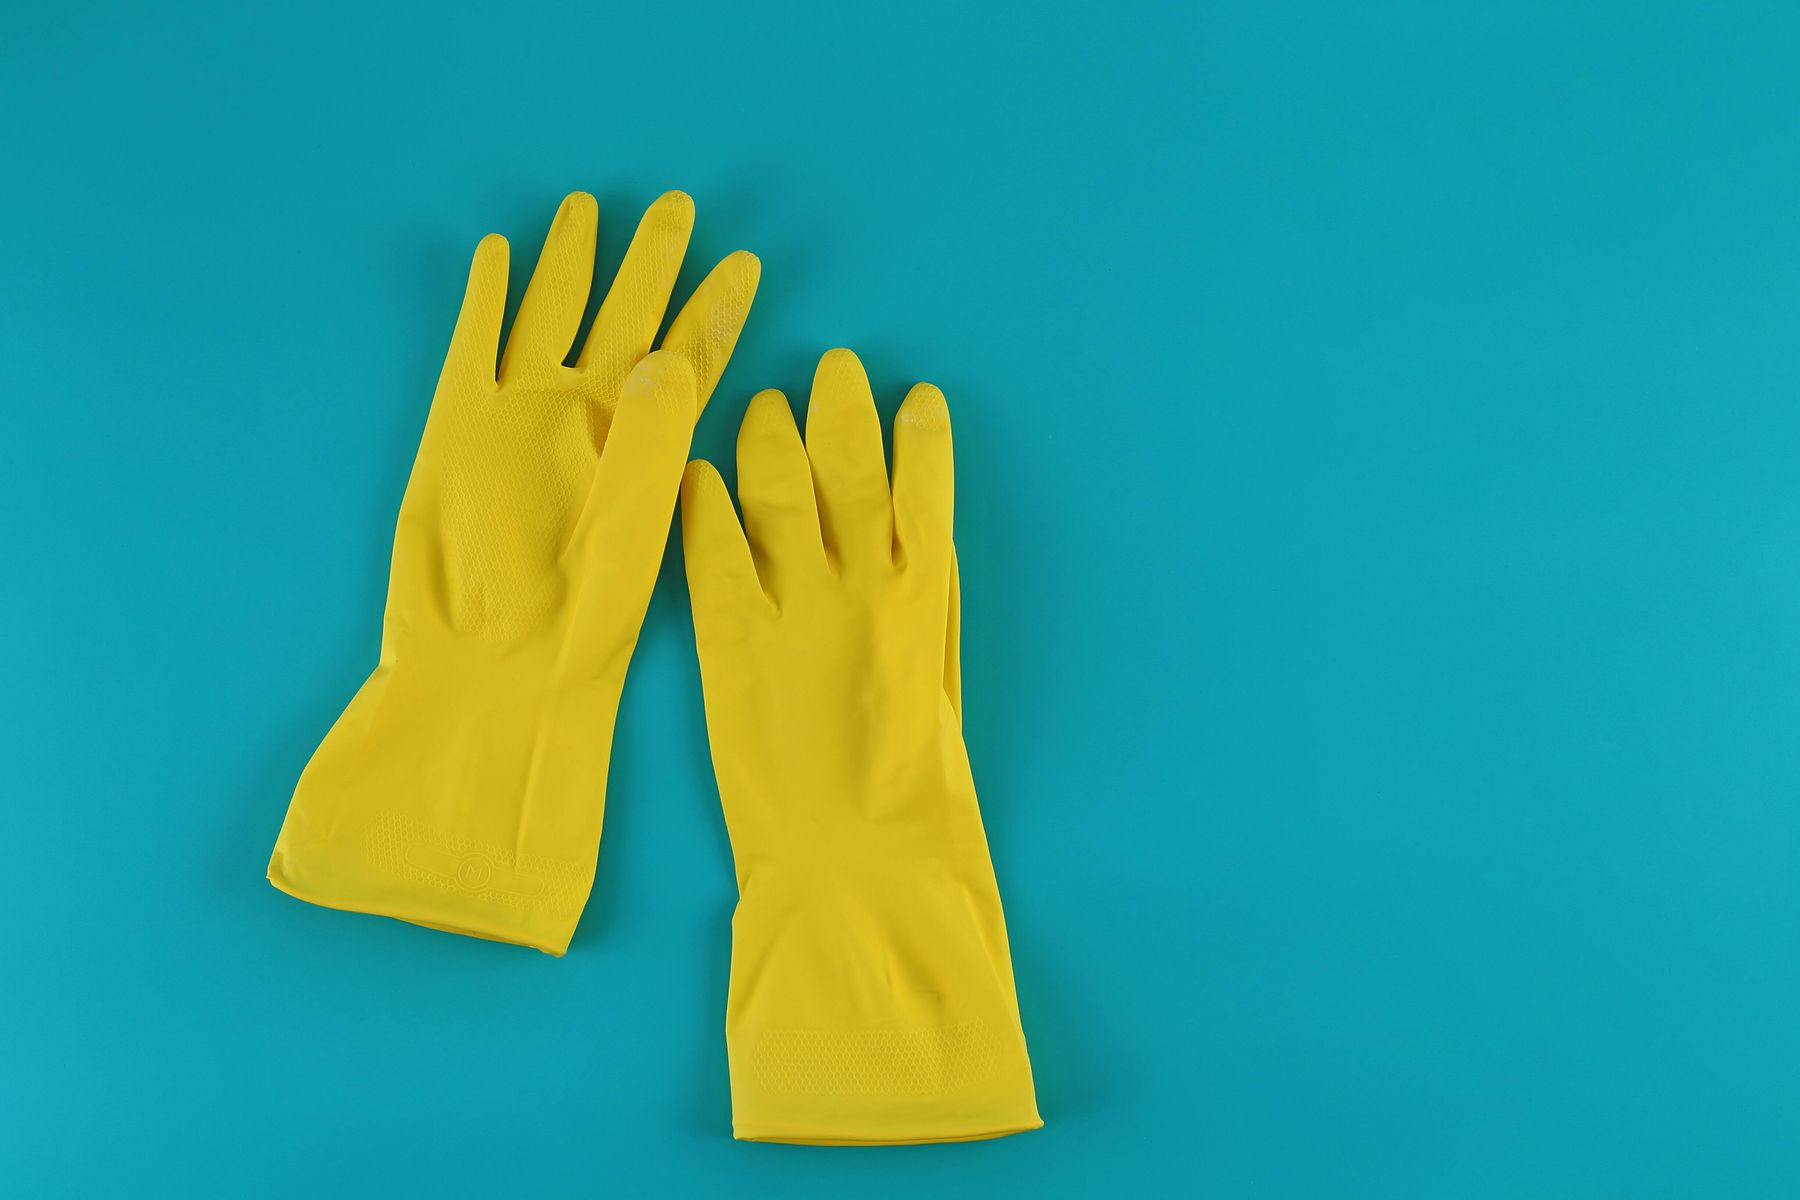 gloves on a blue background